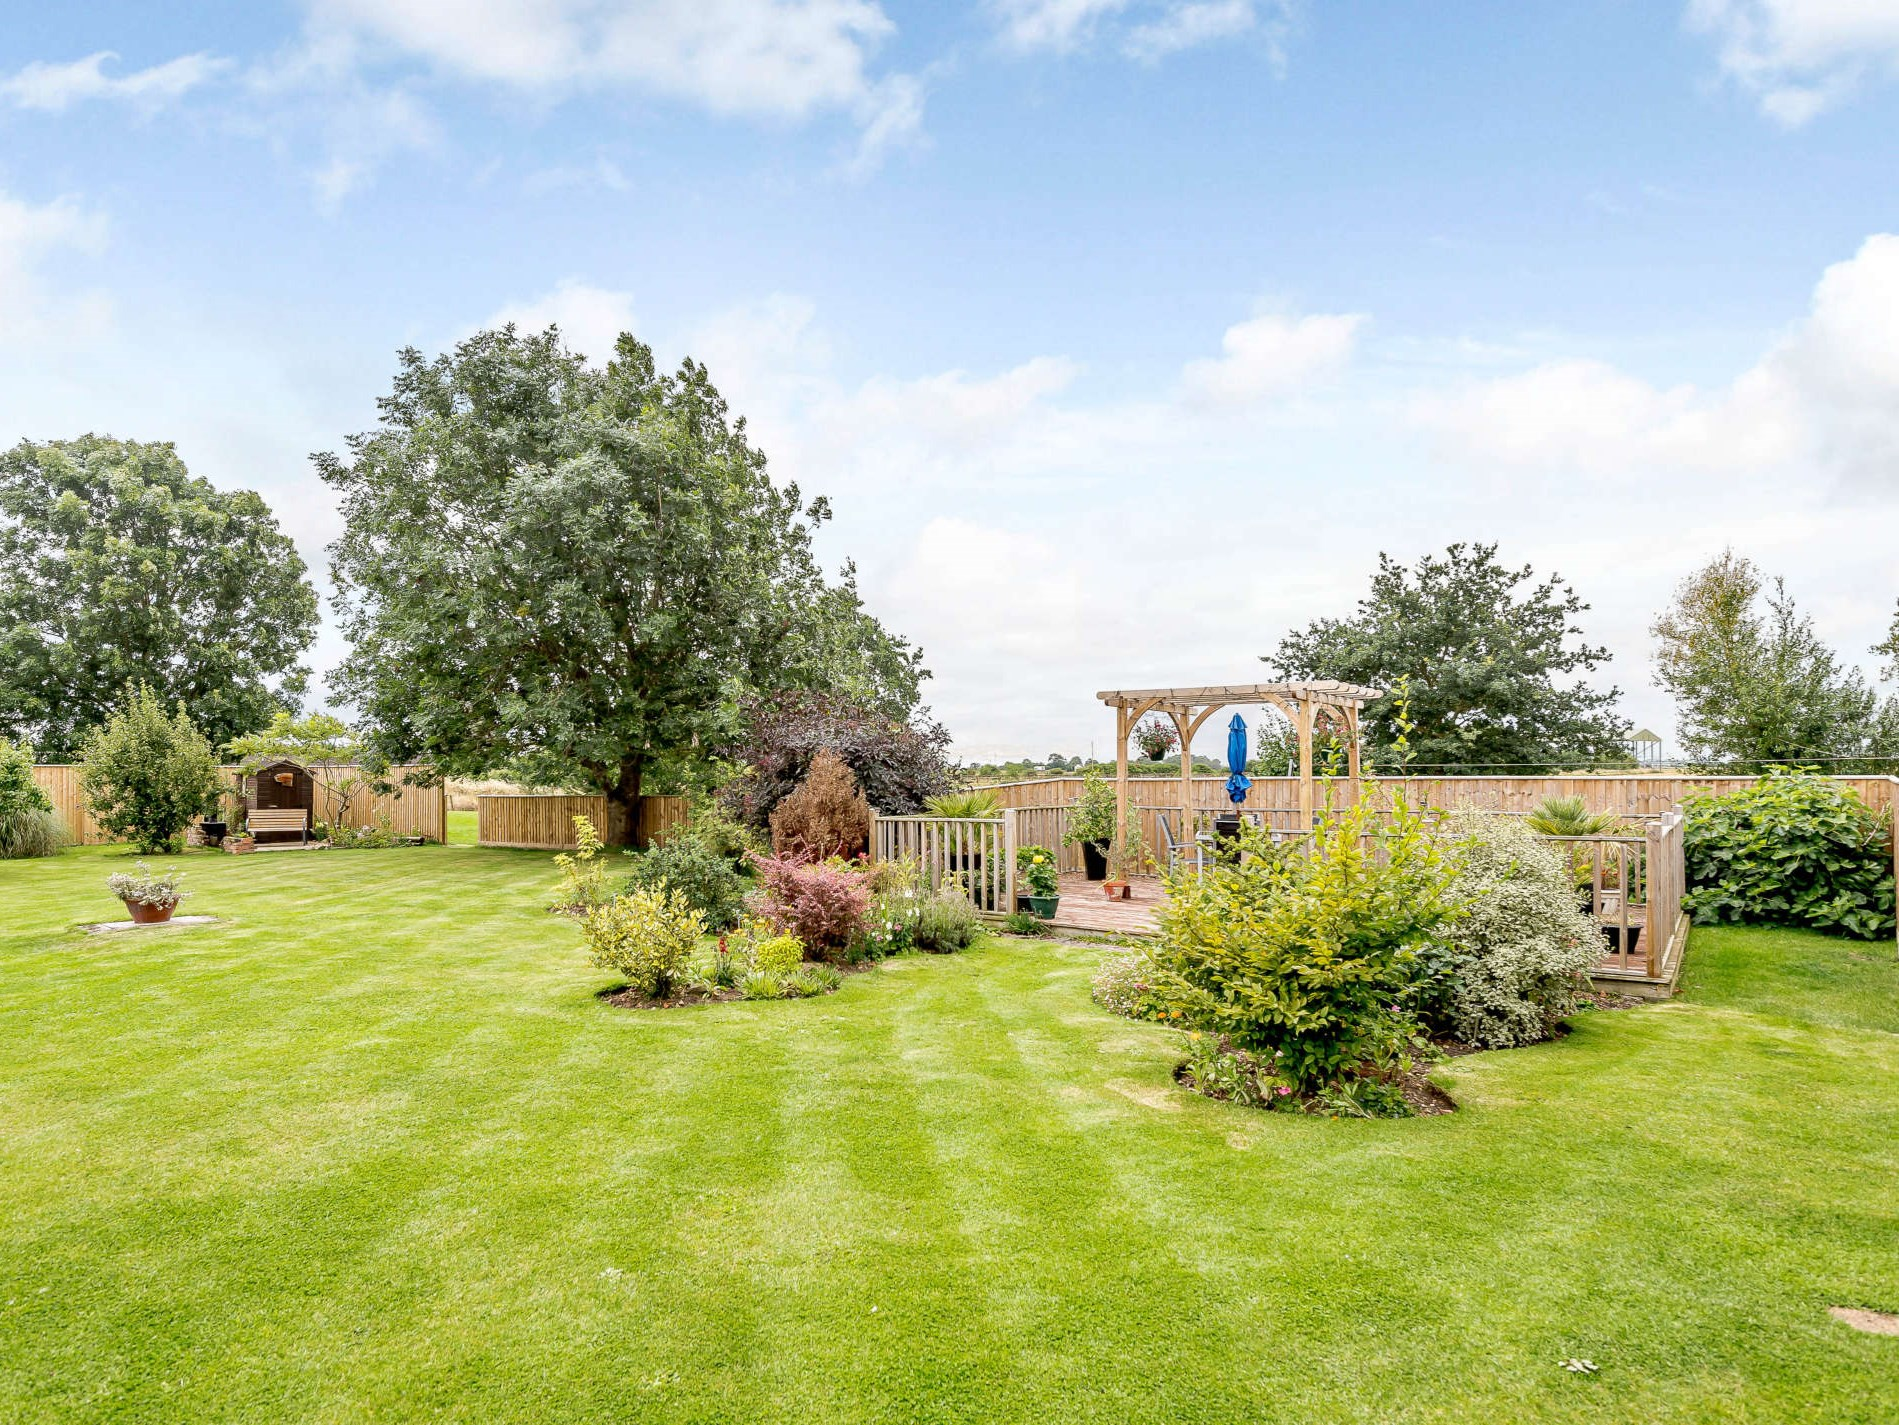 2 Bedroom Cottage in Lincolnshire, East of England